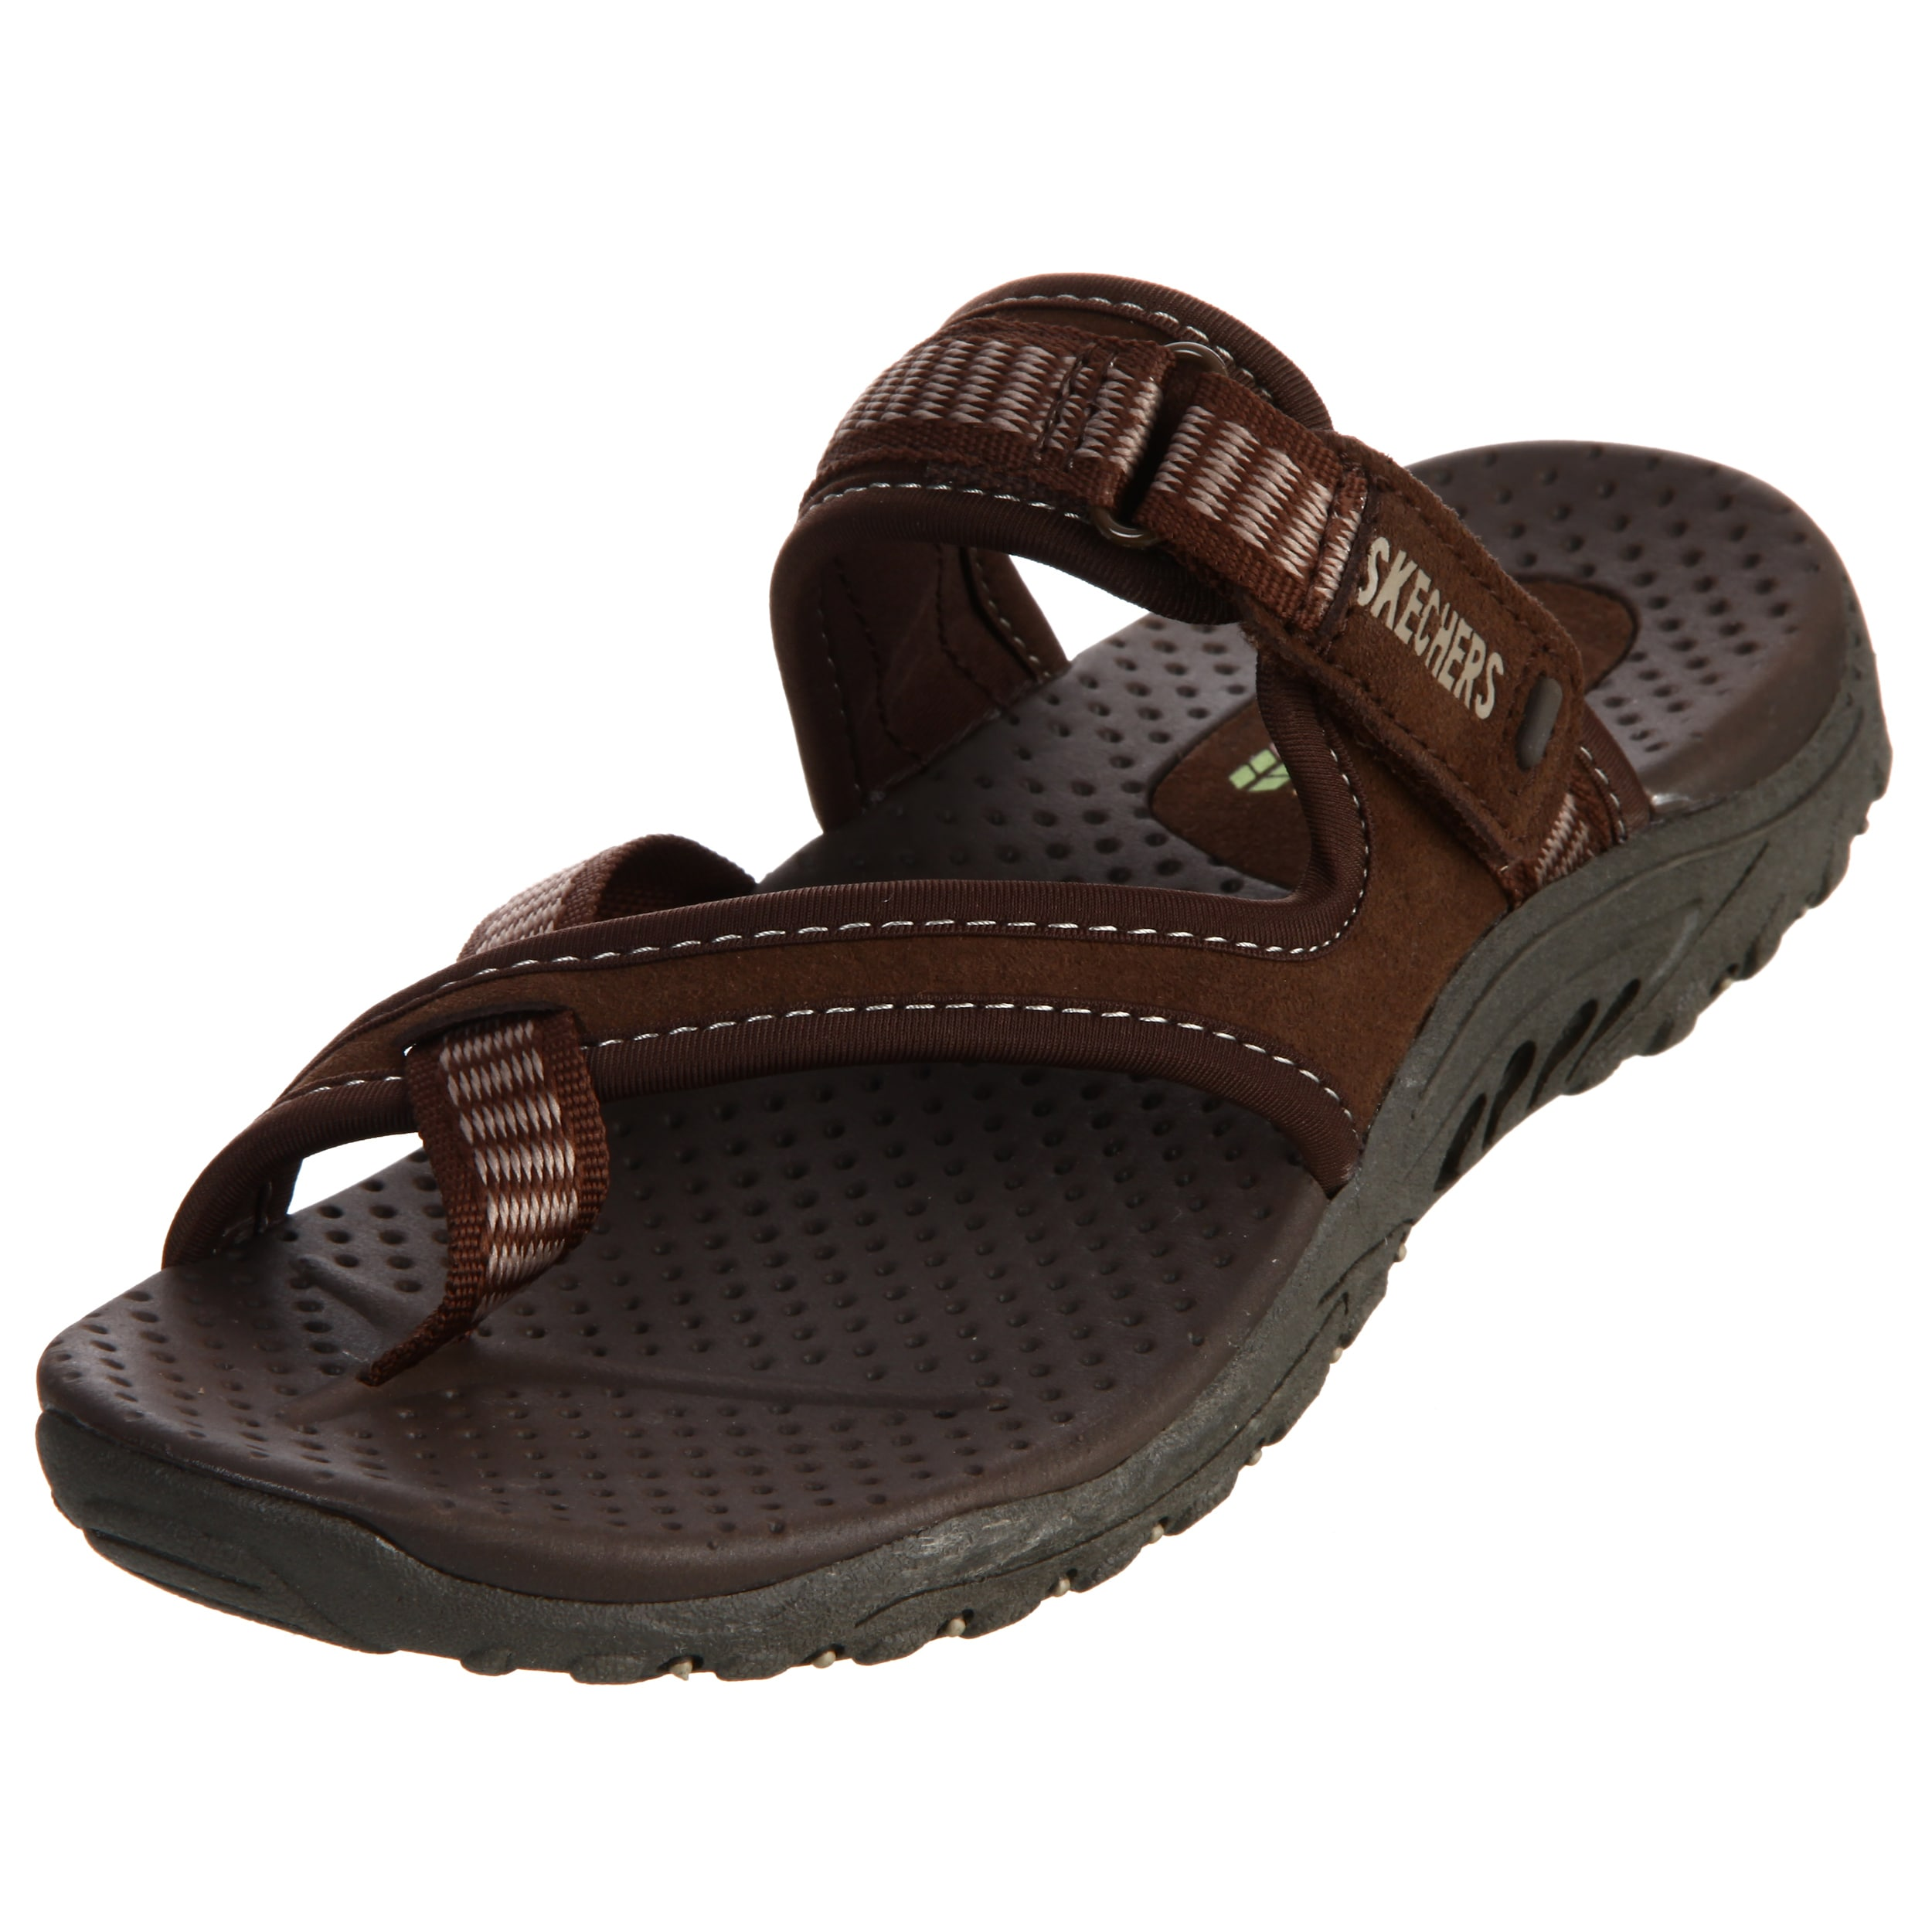 Skechers USA Women's 'Reggae Rasta' Sandals